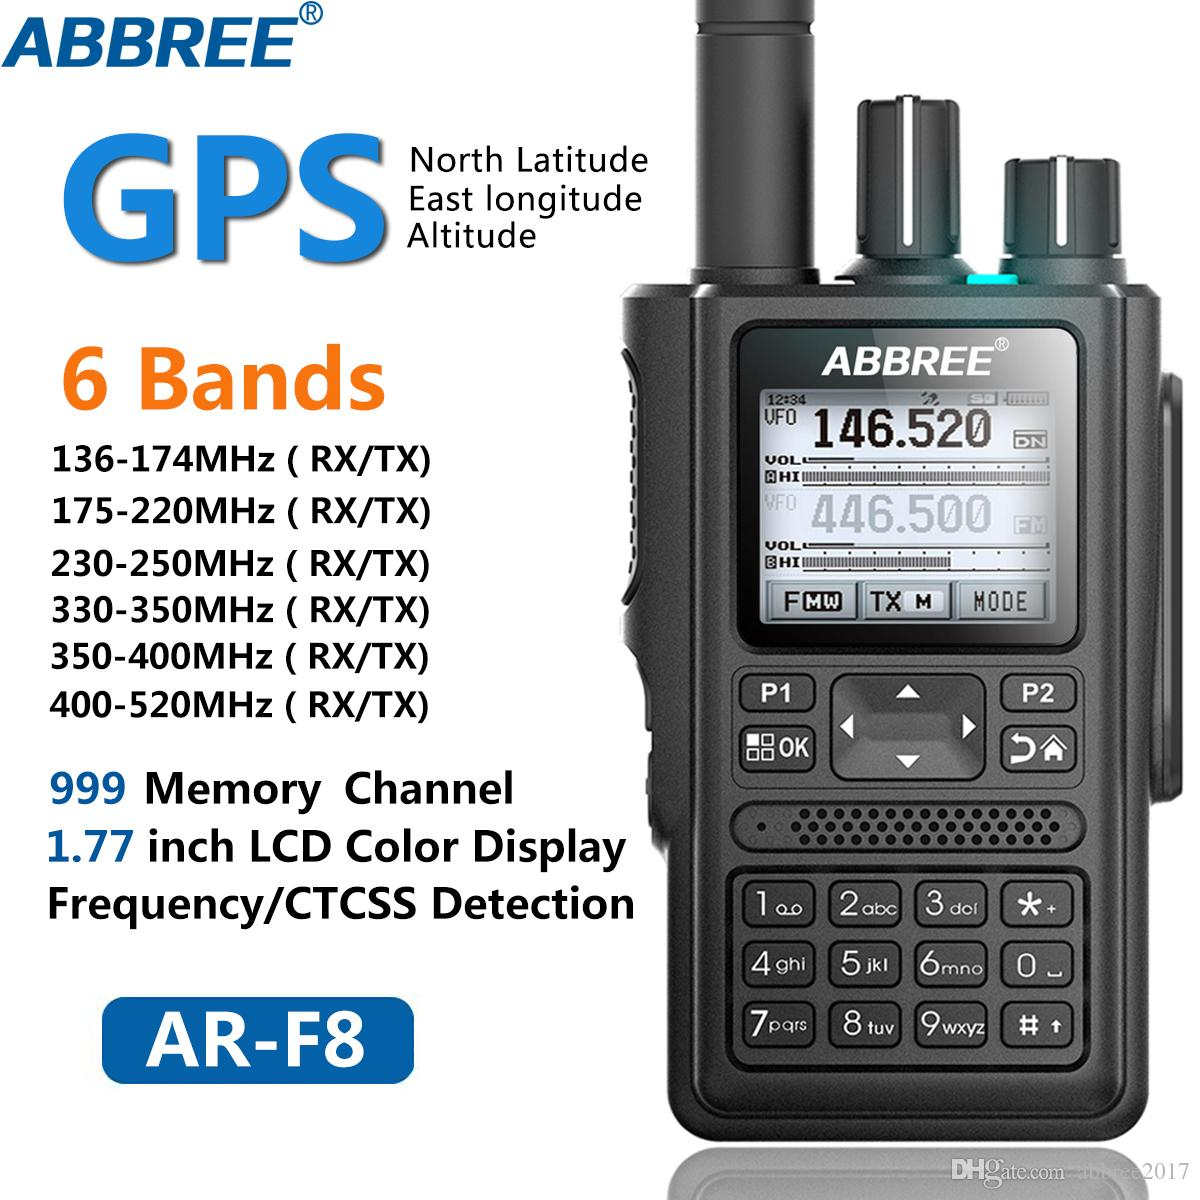 ABBREE AR-F8 GPS 6 Bands(136-520MHz) 8W 999CH Multi-functional ABBREE AR-F8 LCD Color Amateur Ham Two Way Radio Walkie Talkie